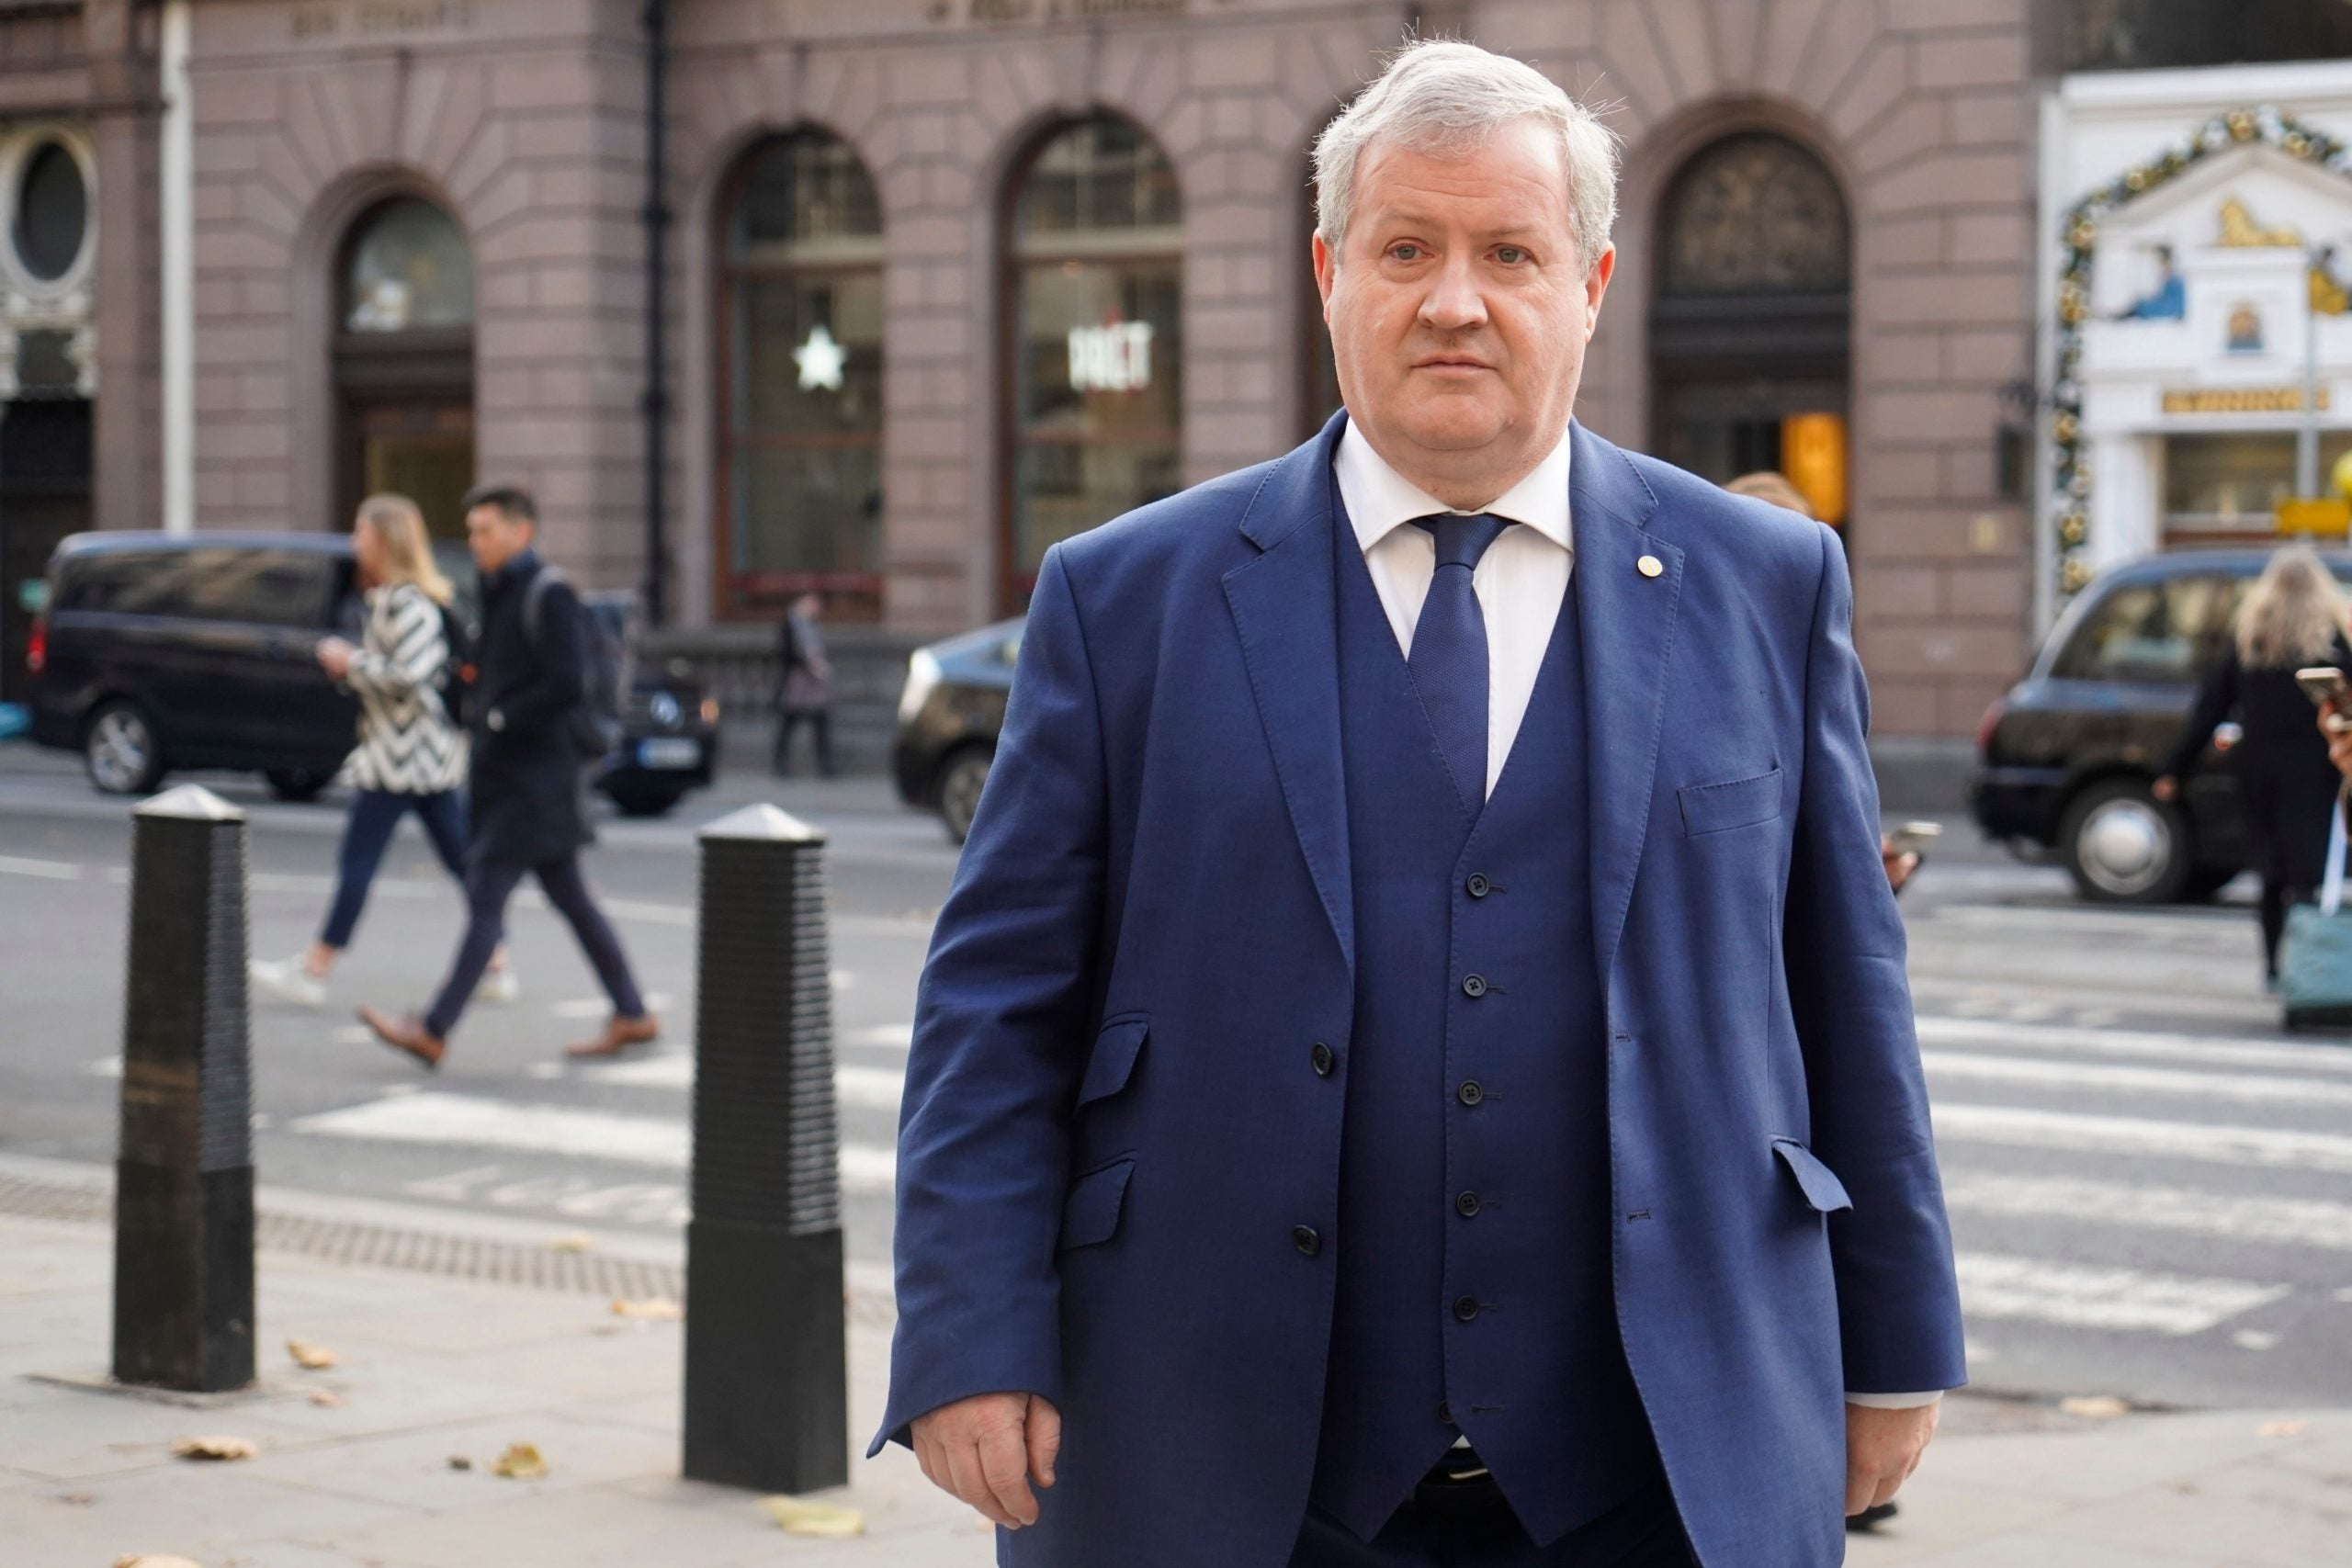 Commons Confidential: Wrath of Ian Blackford, the humble crofter